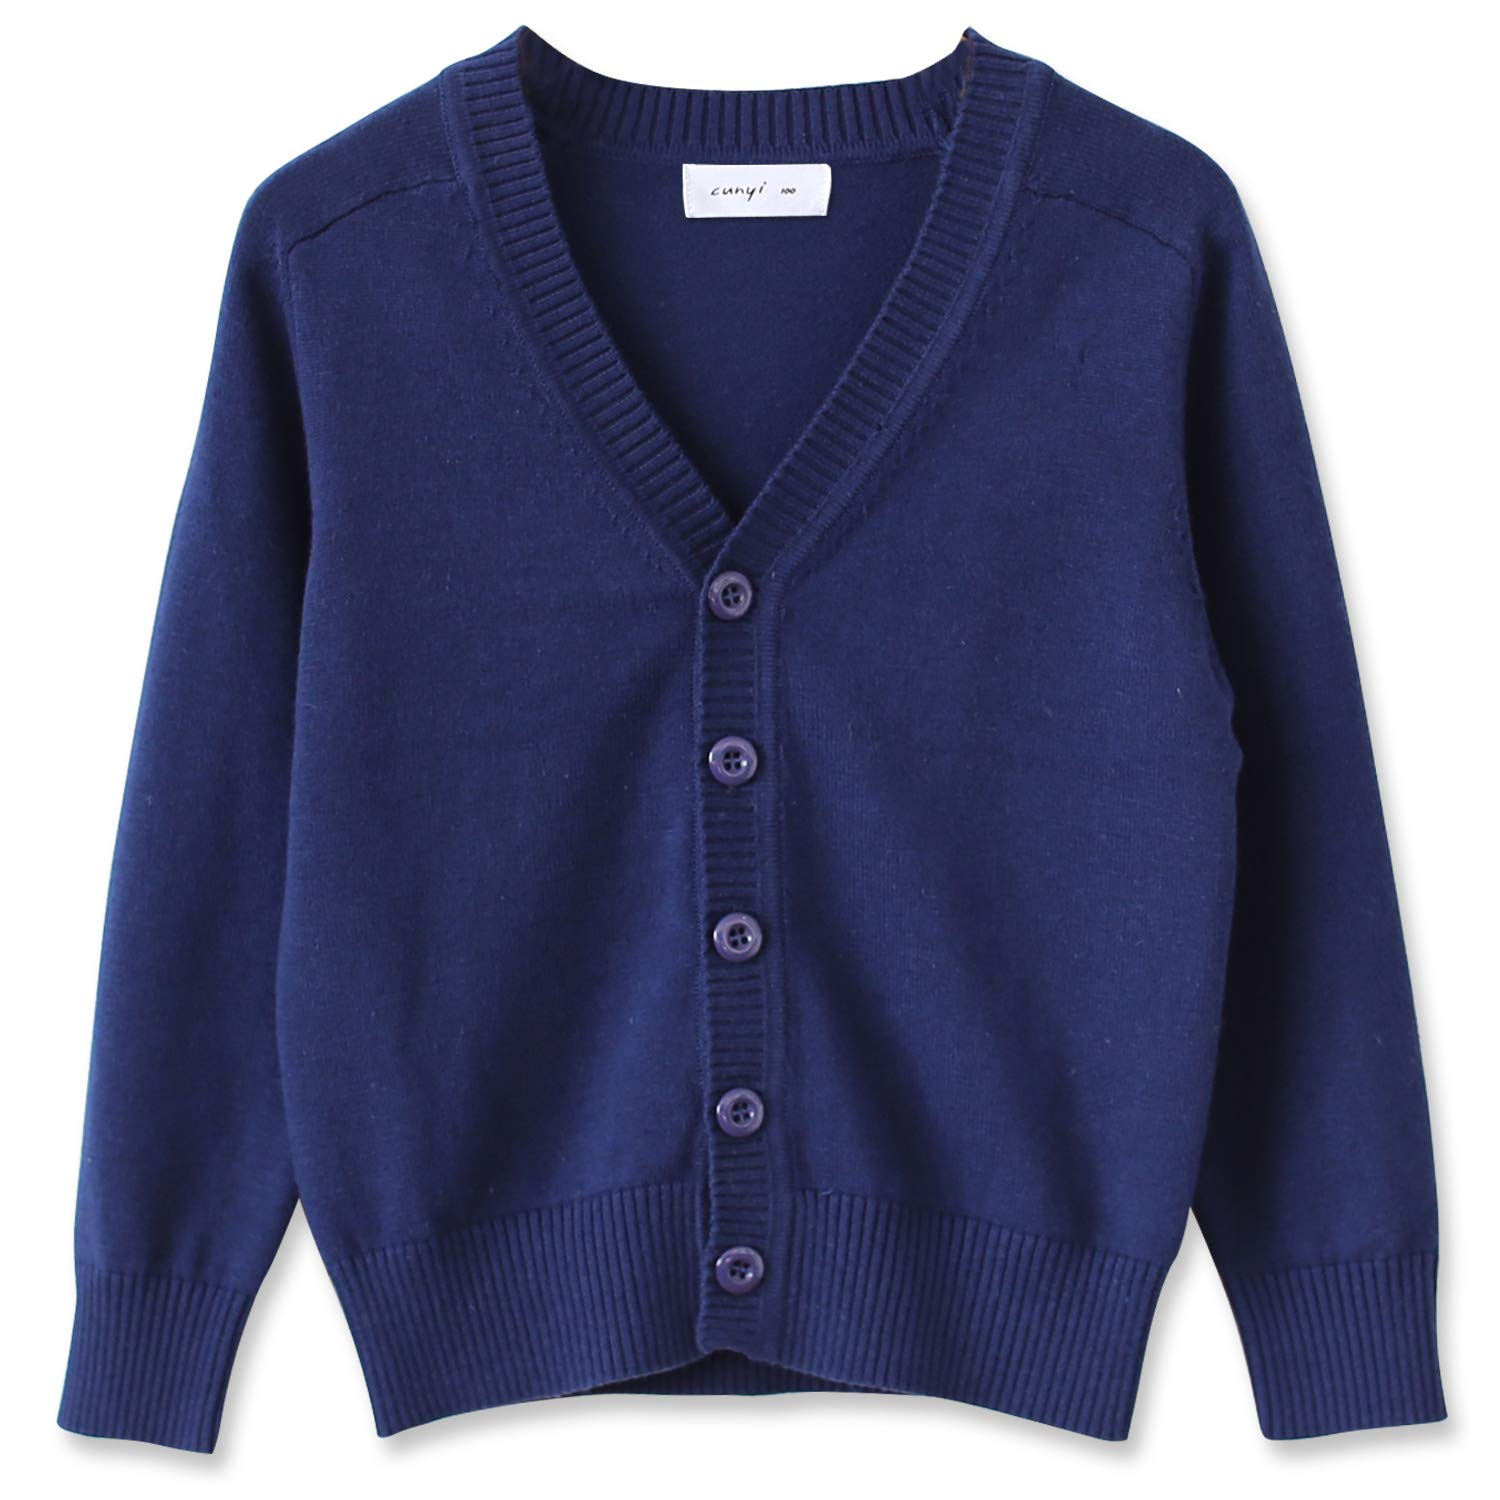 CUNYI Little Boys Button-up Cardigan V-Neck Cotton Knit Sweater Casual Outerwear, Dark Blue, 150